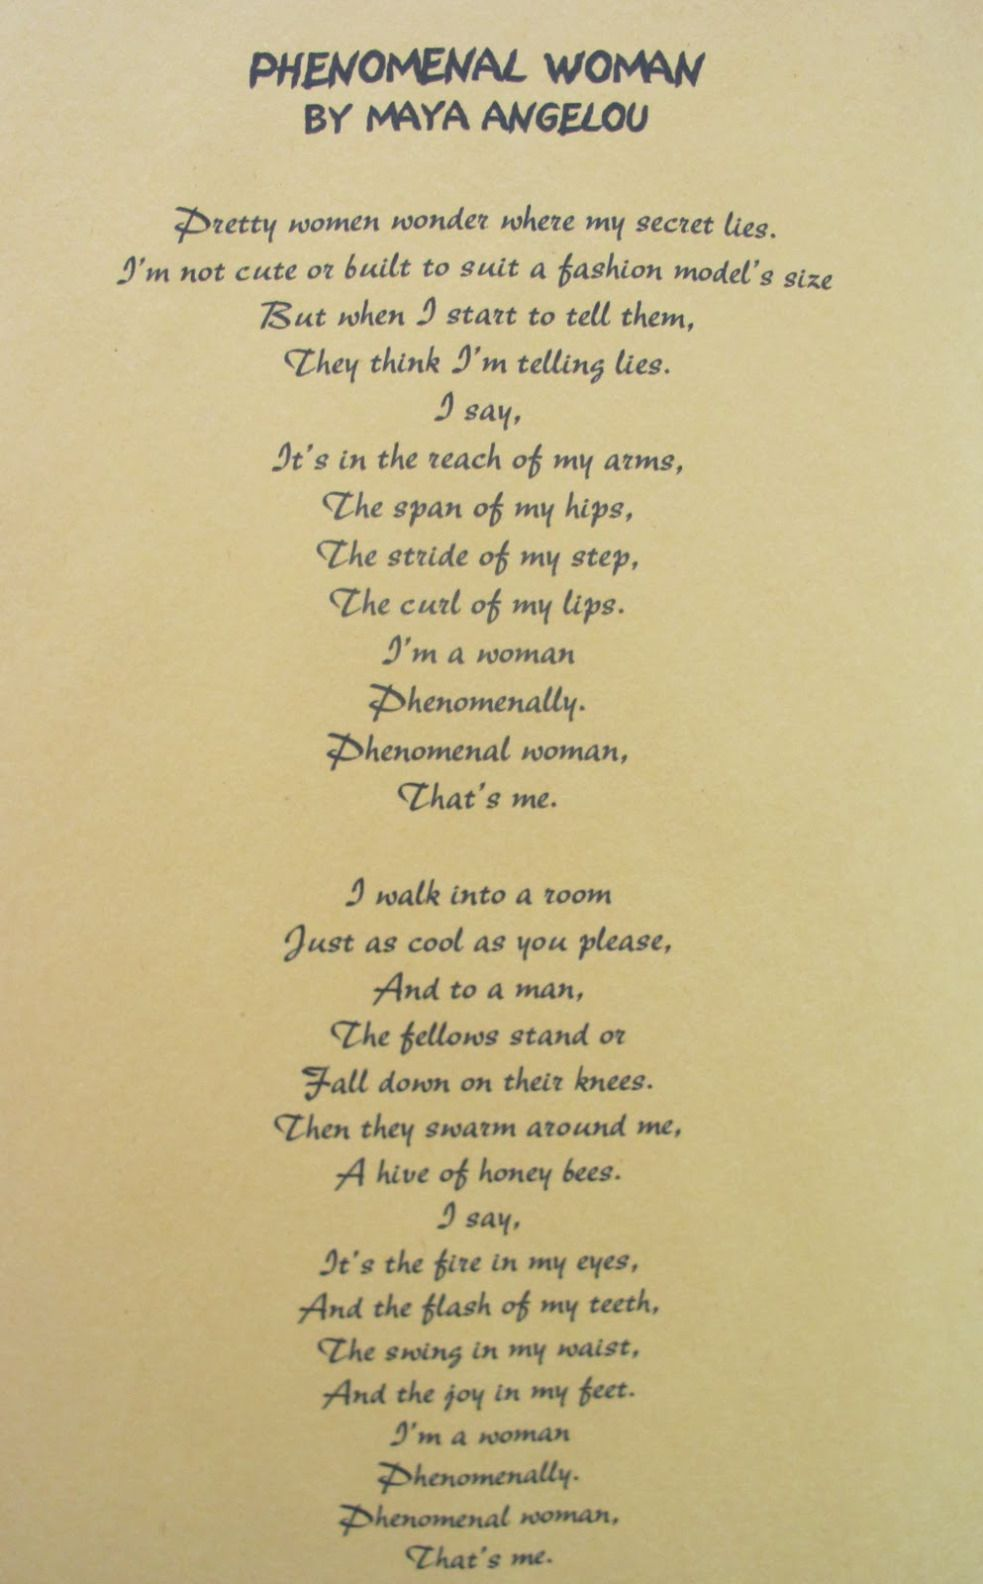 Phenomenal Woman By Maya Angelou A Friend Once Told Me This Poem